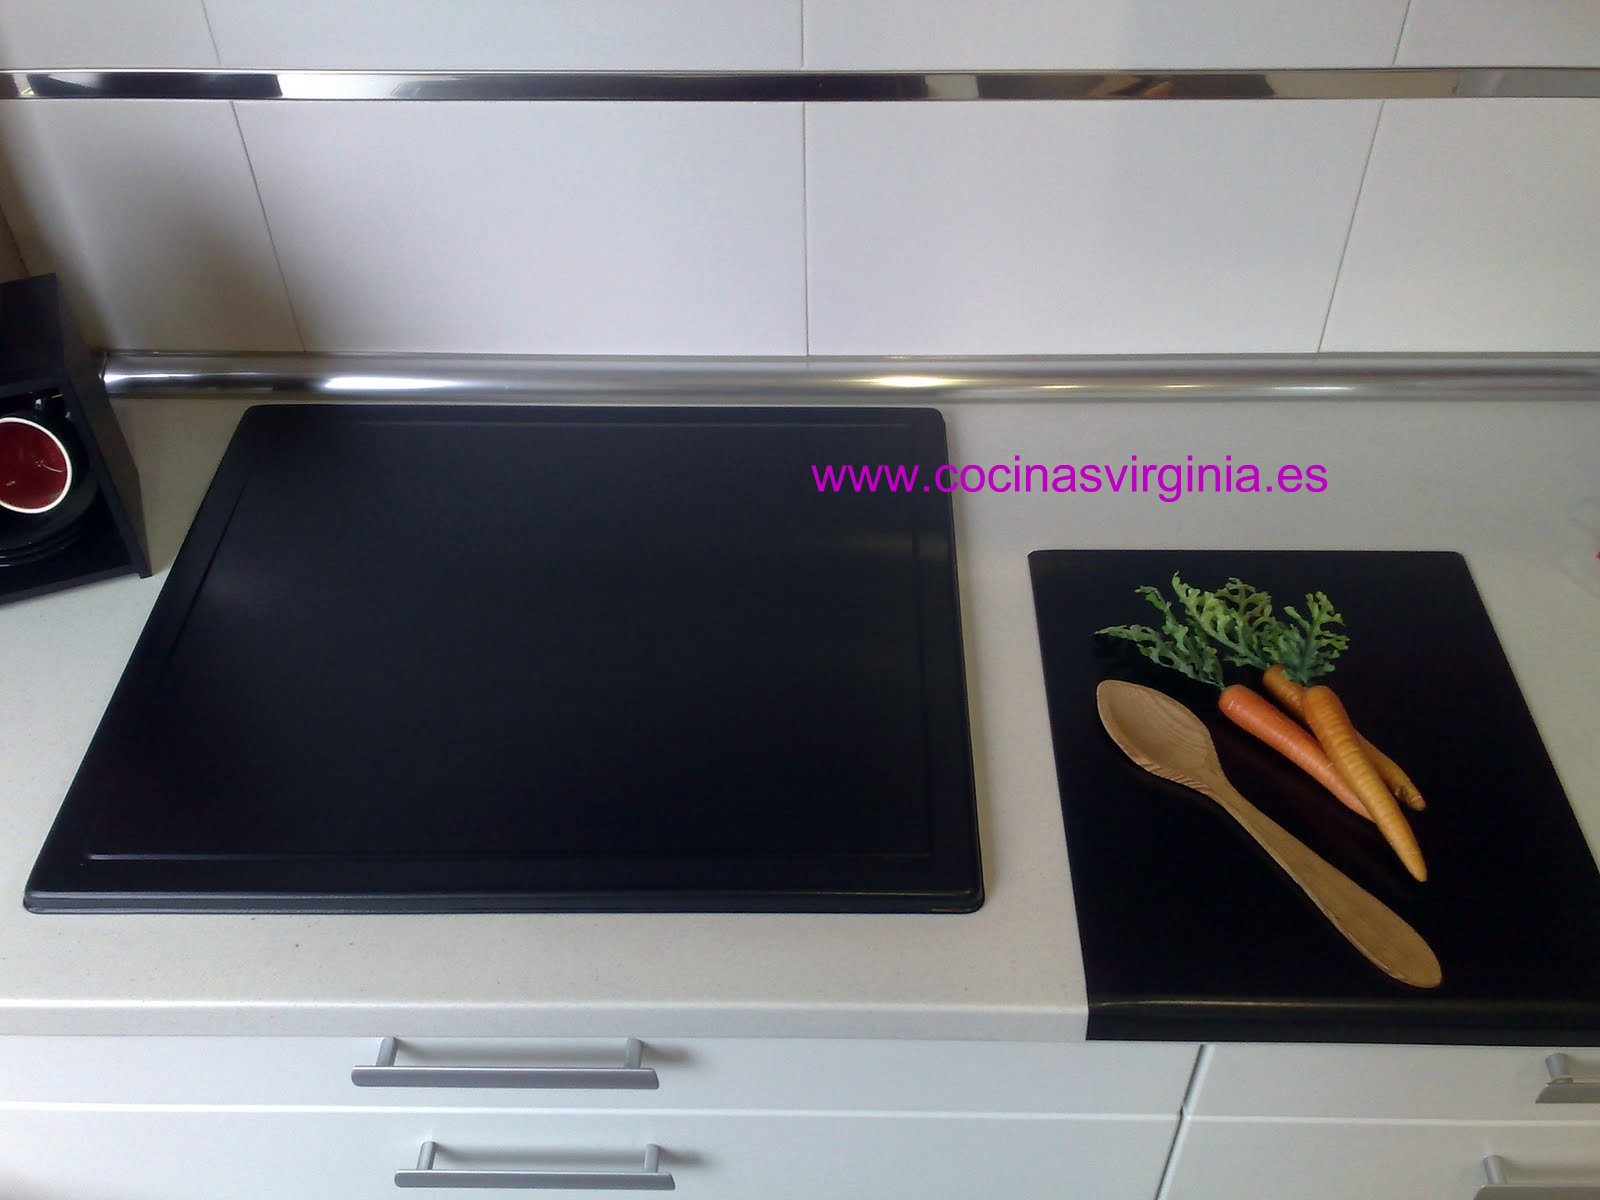 Kitchen cover dise os virginia - Tapas para vitroceramica ...